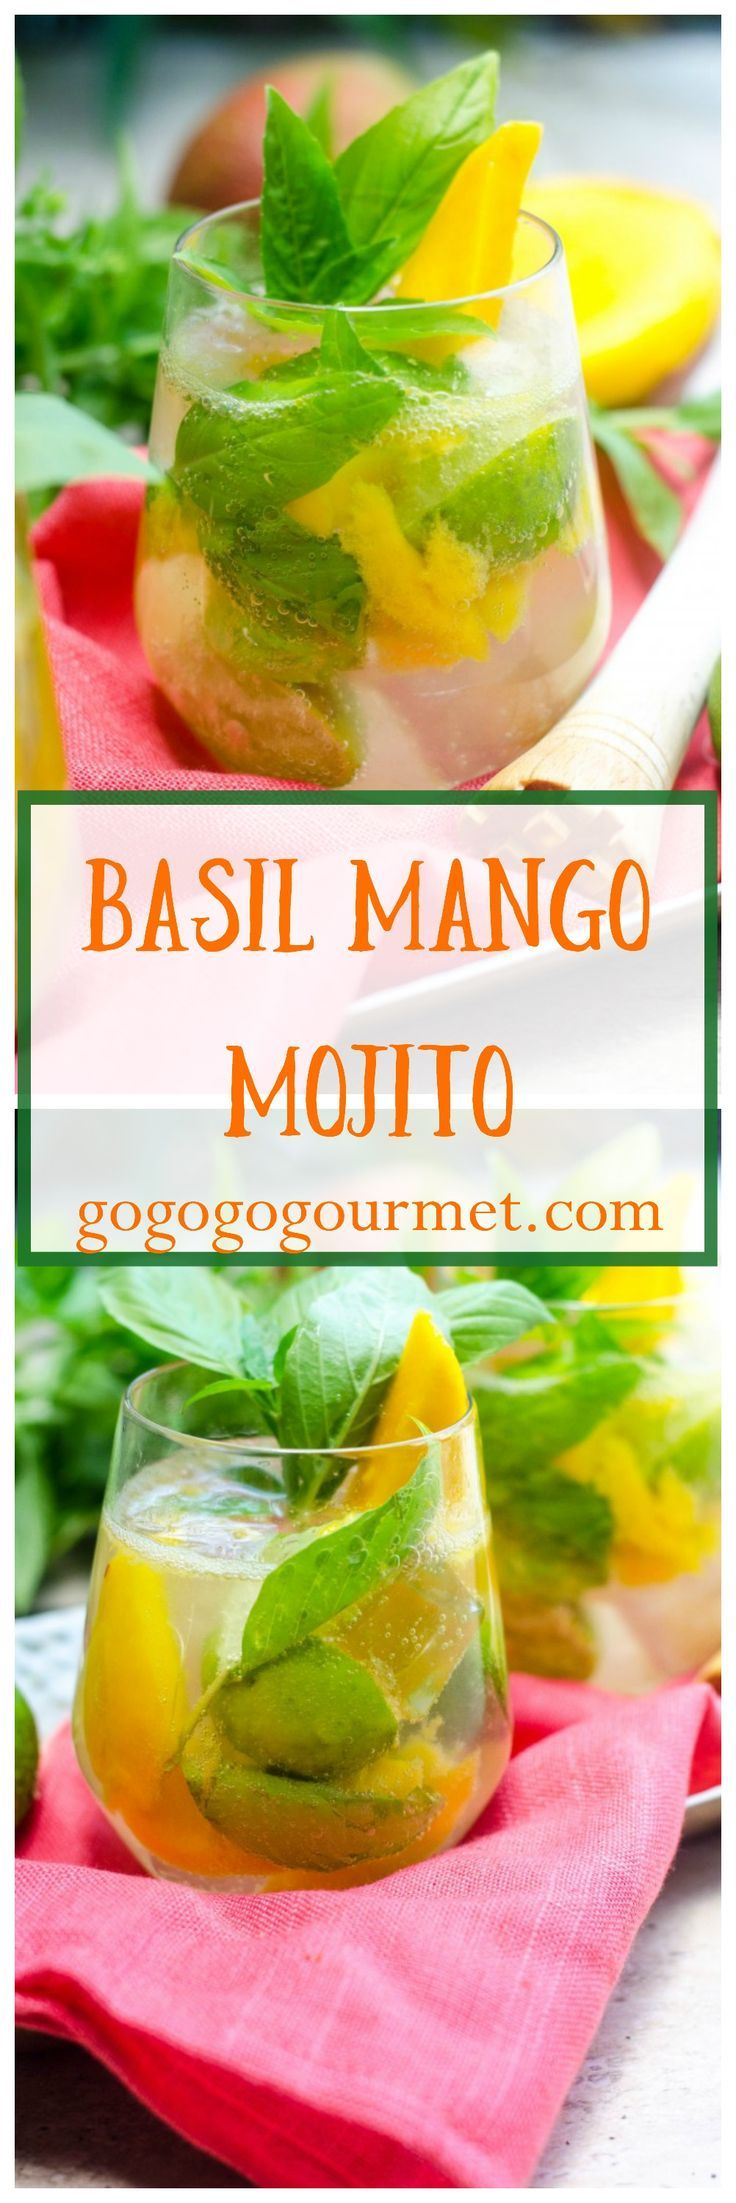 This classic gets a tropical twist thanks to sweet mango, and is a great way to use up some of that basil in your garden! Basil Mango Mojitos   Go Go Go Gourmet @gogogogourmet